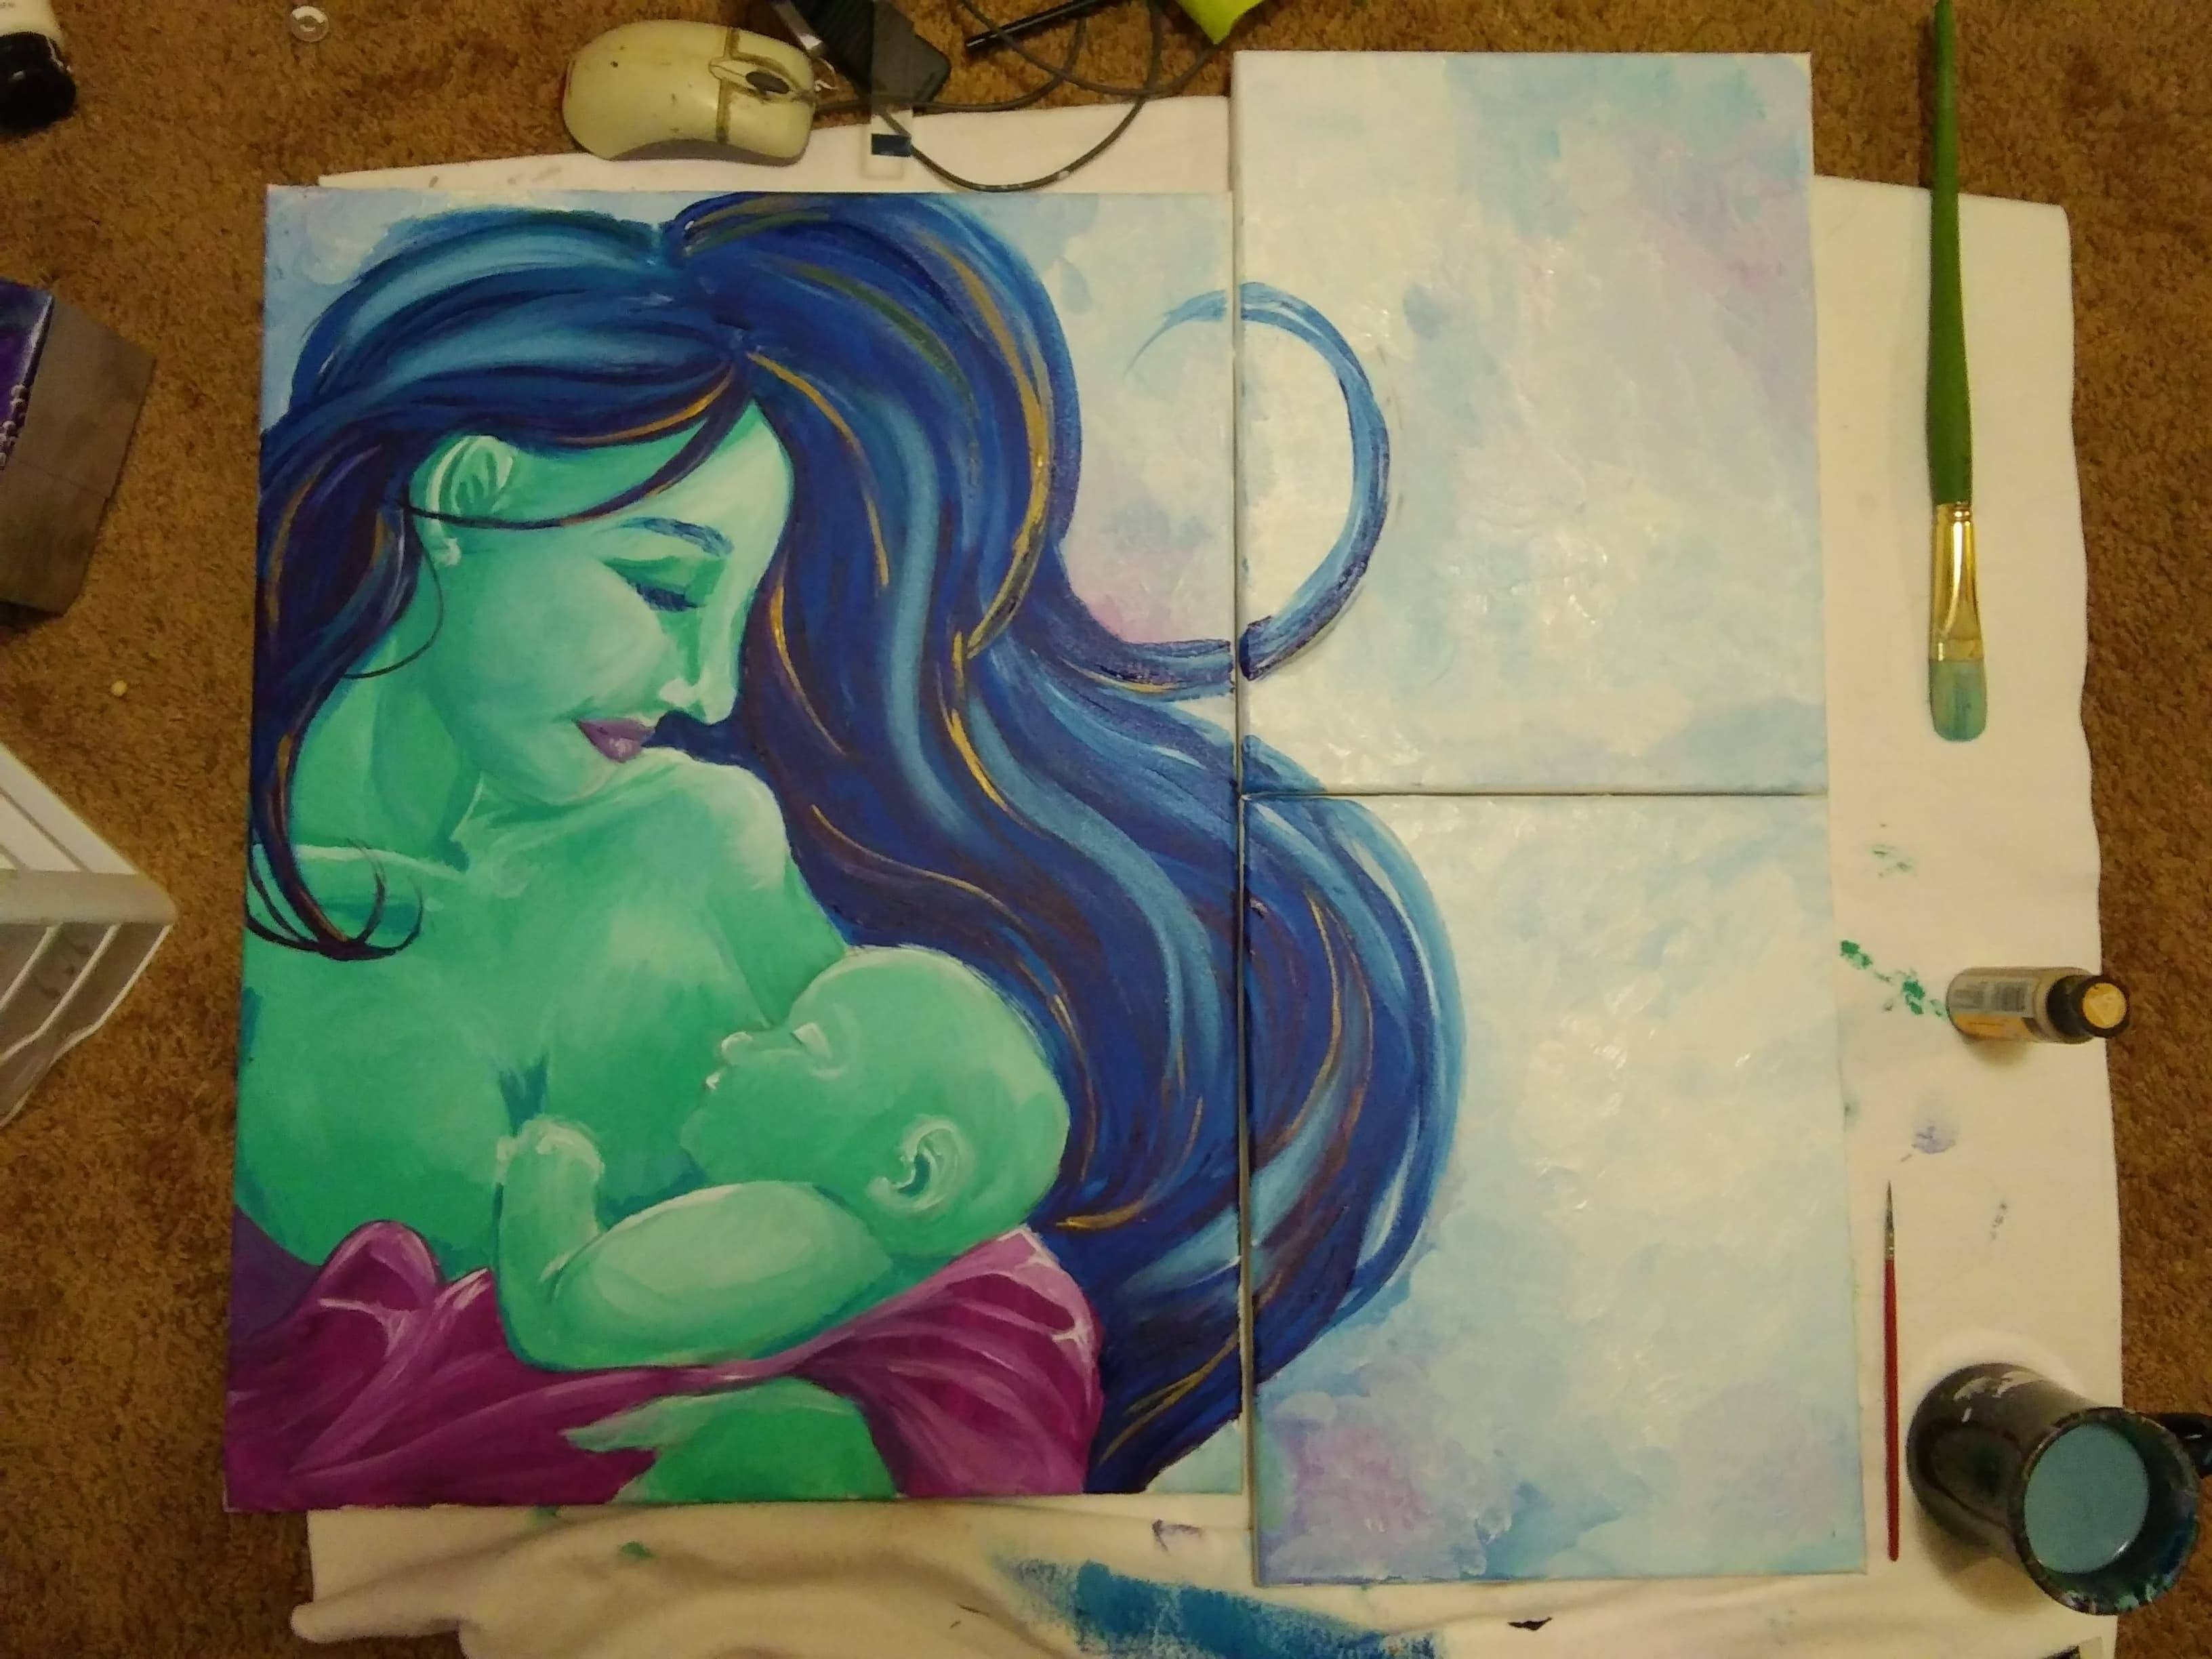 painting of a green woman holding a baby